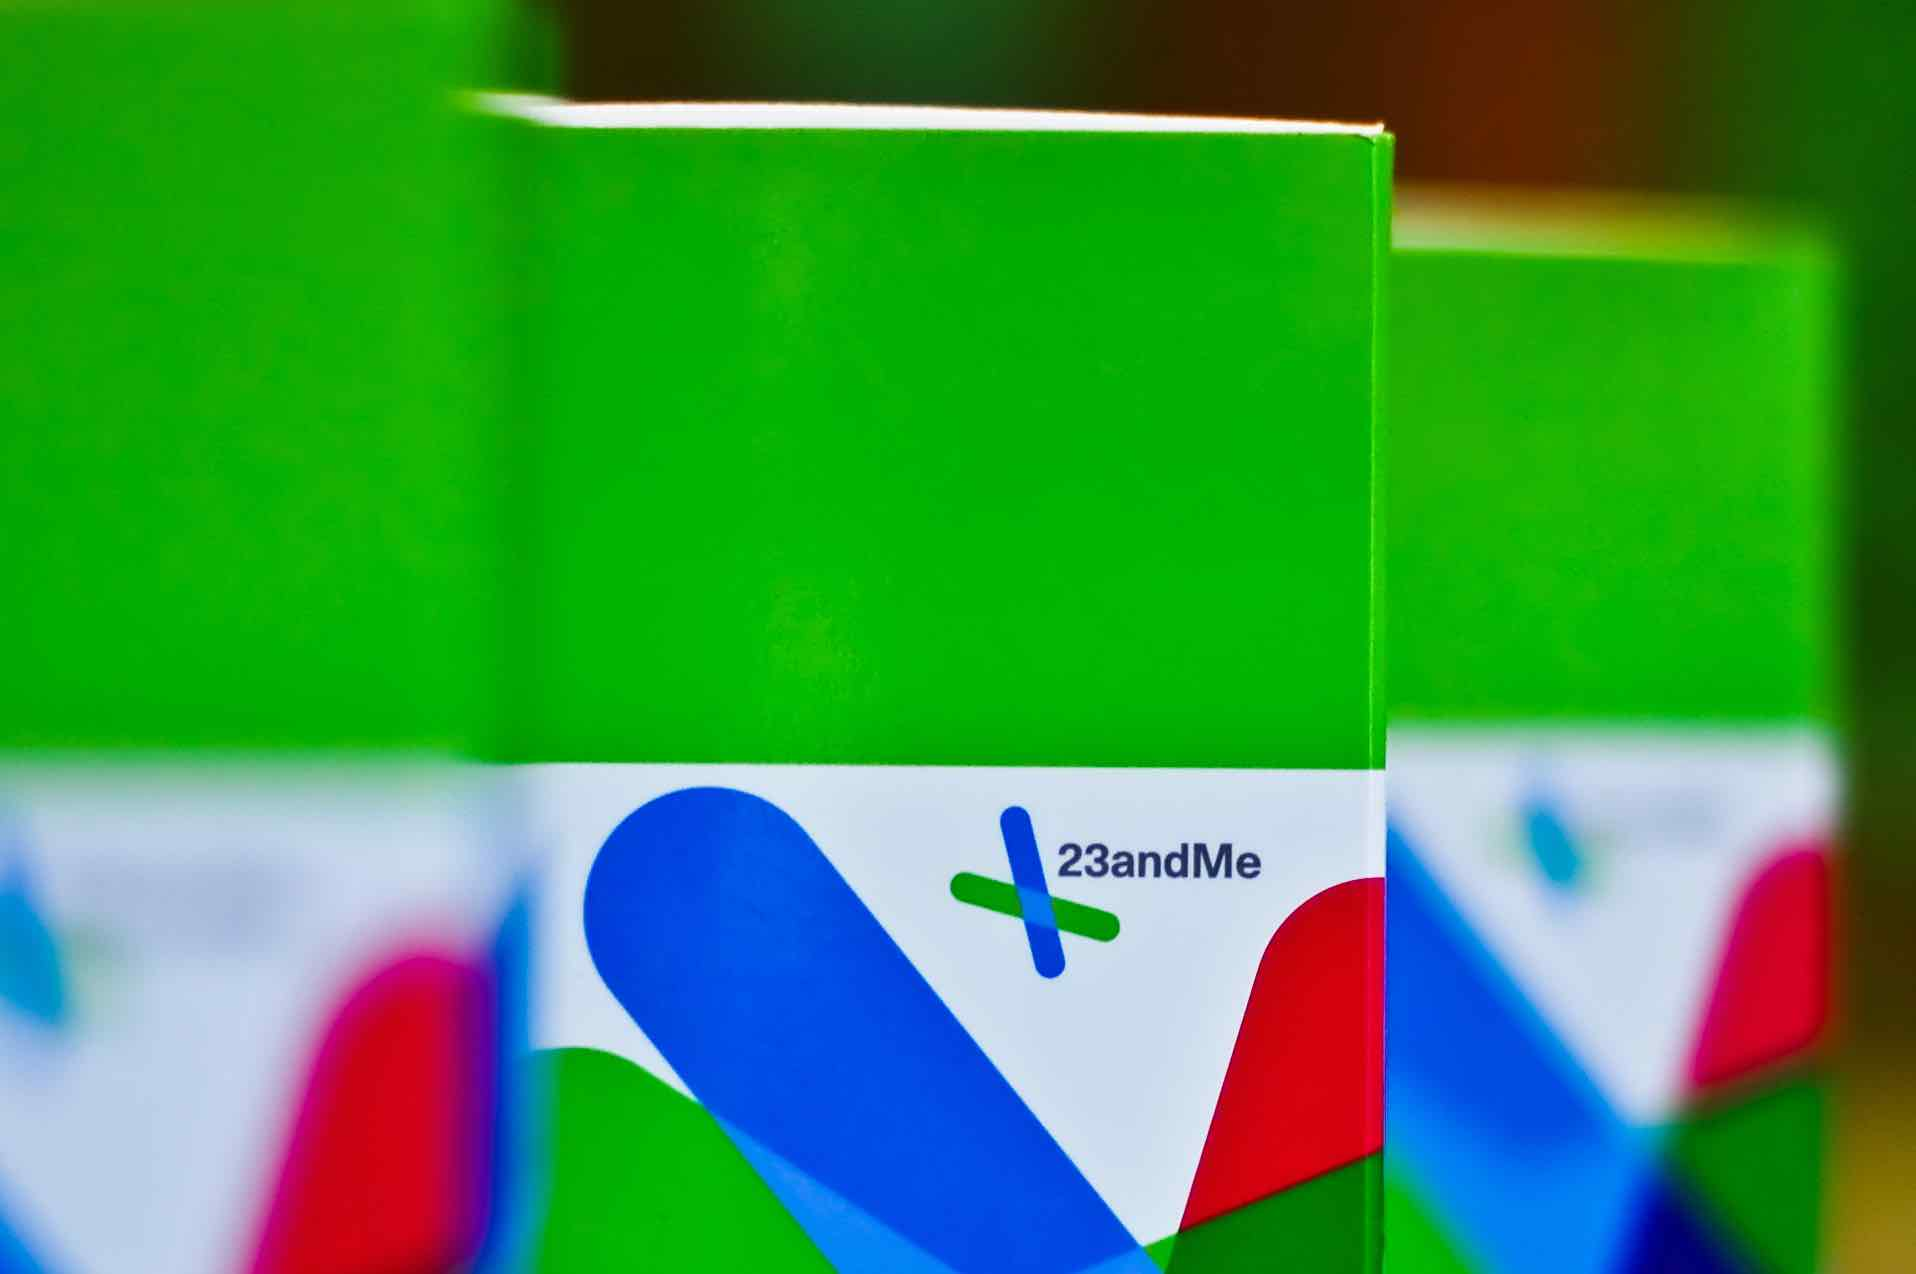 23andMe genetic testing kit (Nosha, via Flickr)